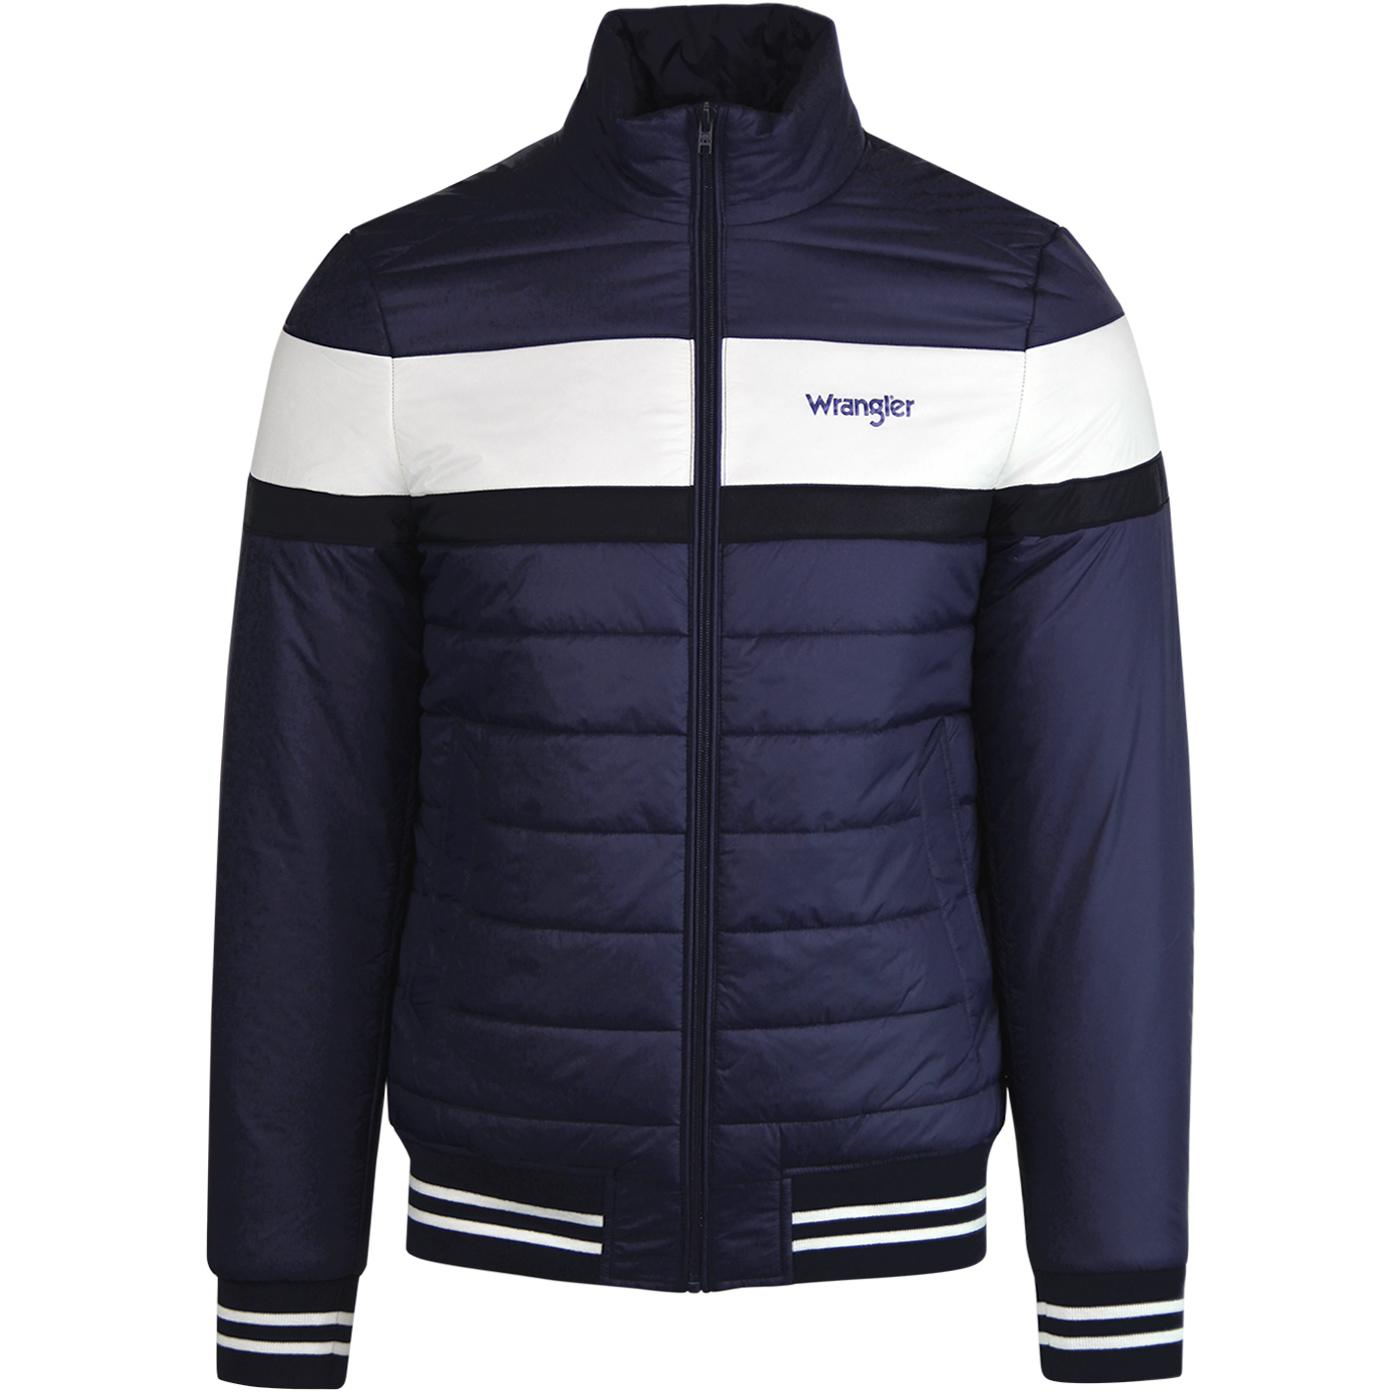 WRANGLER Retro 80s Colour Block Puffer Jacket (BD)